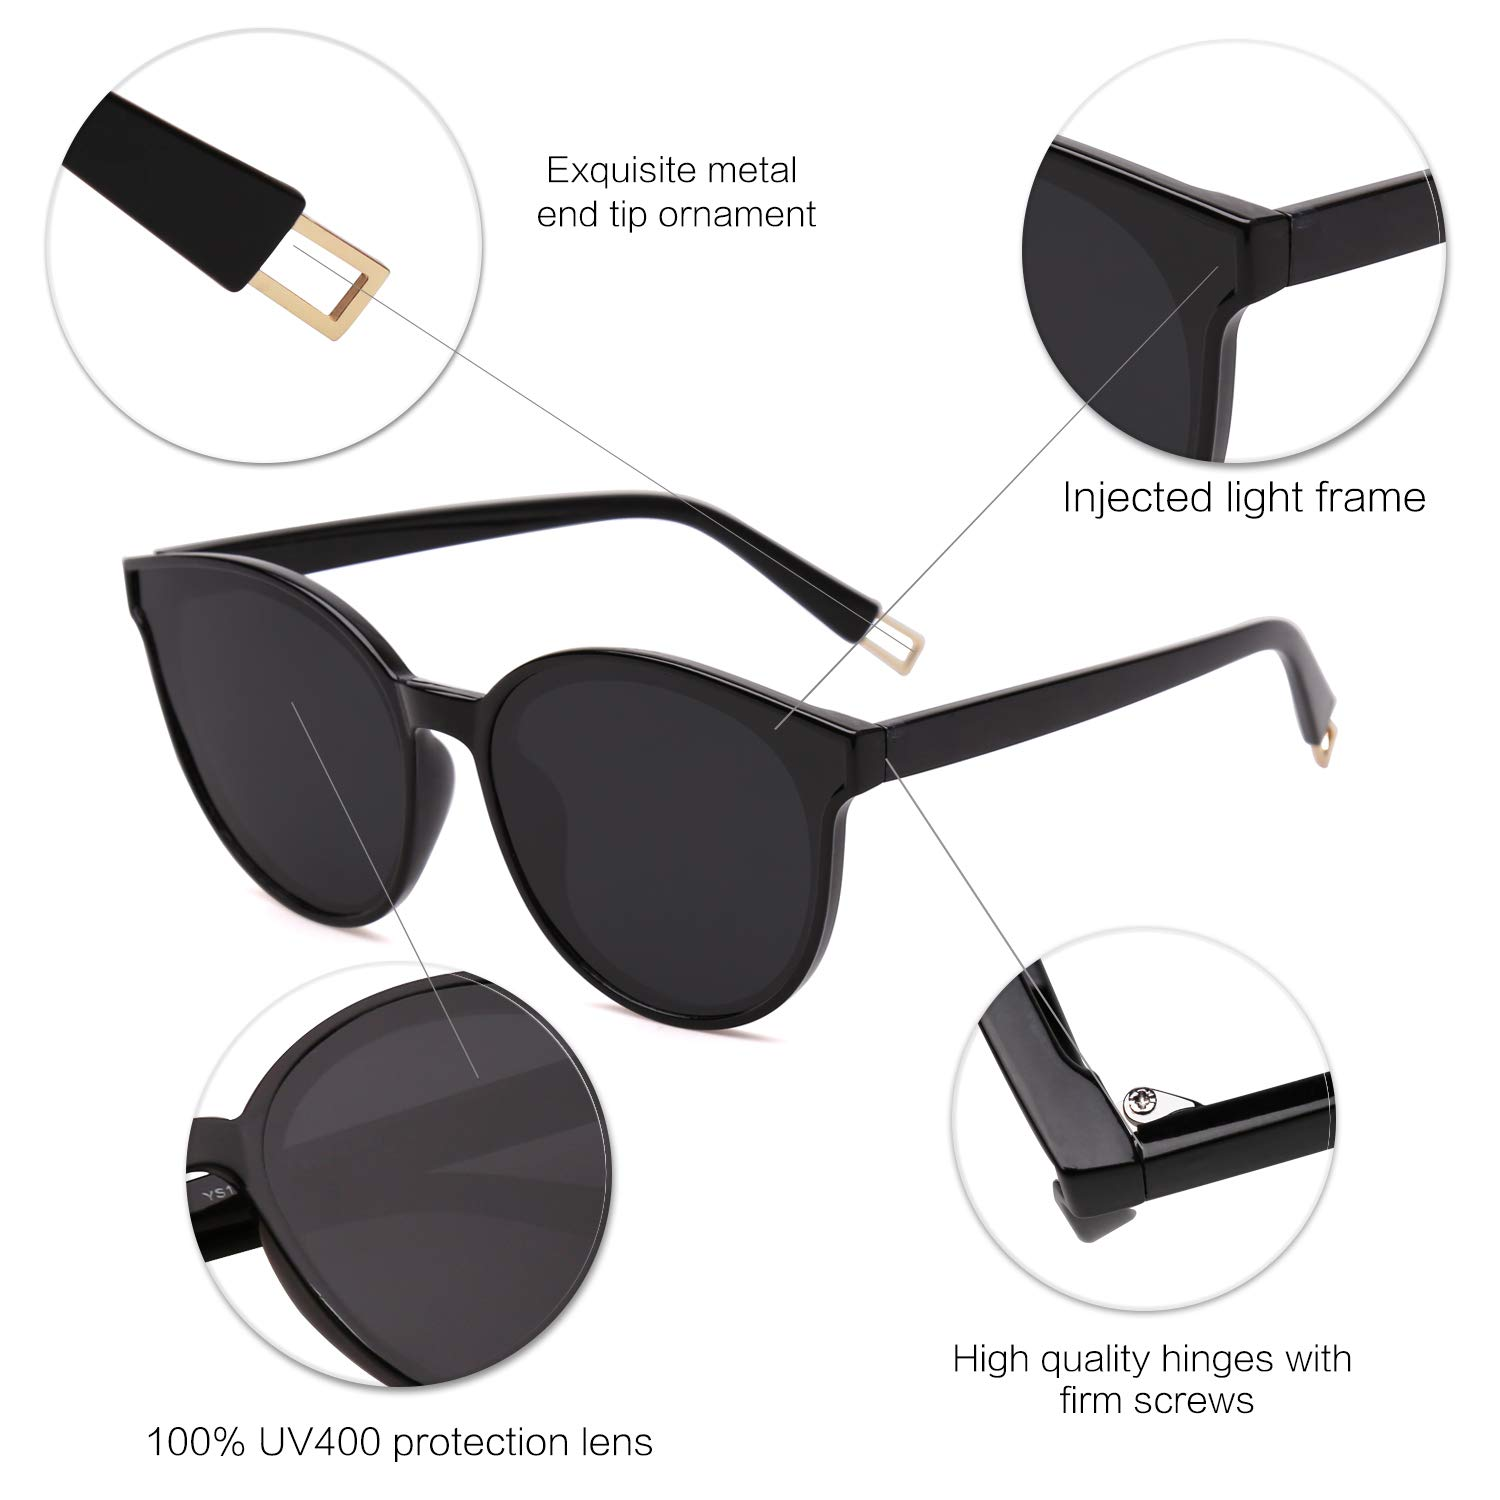 0de1d4ce79 Amazon.com  SOJOS Fashion Round Sunglasses for Women Men Oversized Vintage  Shades SJ2057 with Black Frame Grey Lens  Clothing